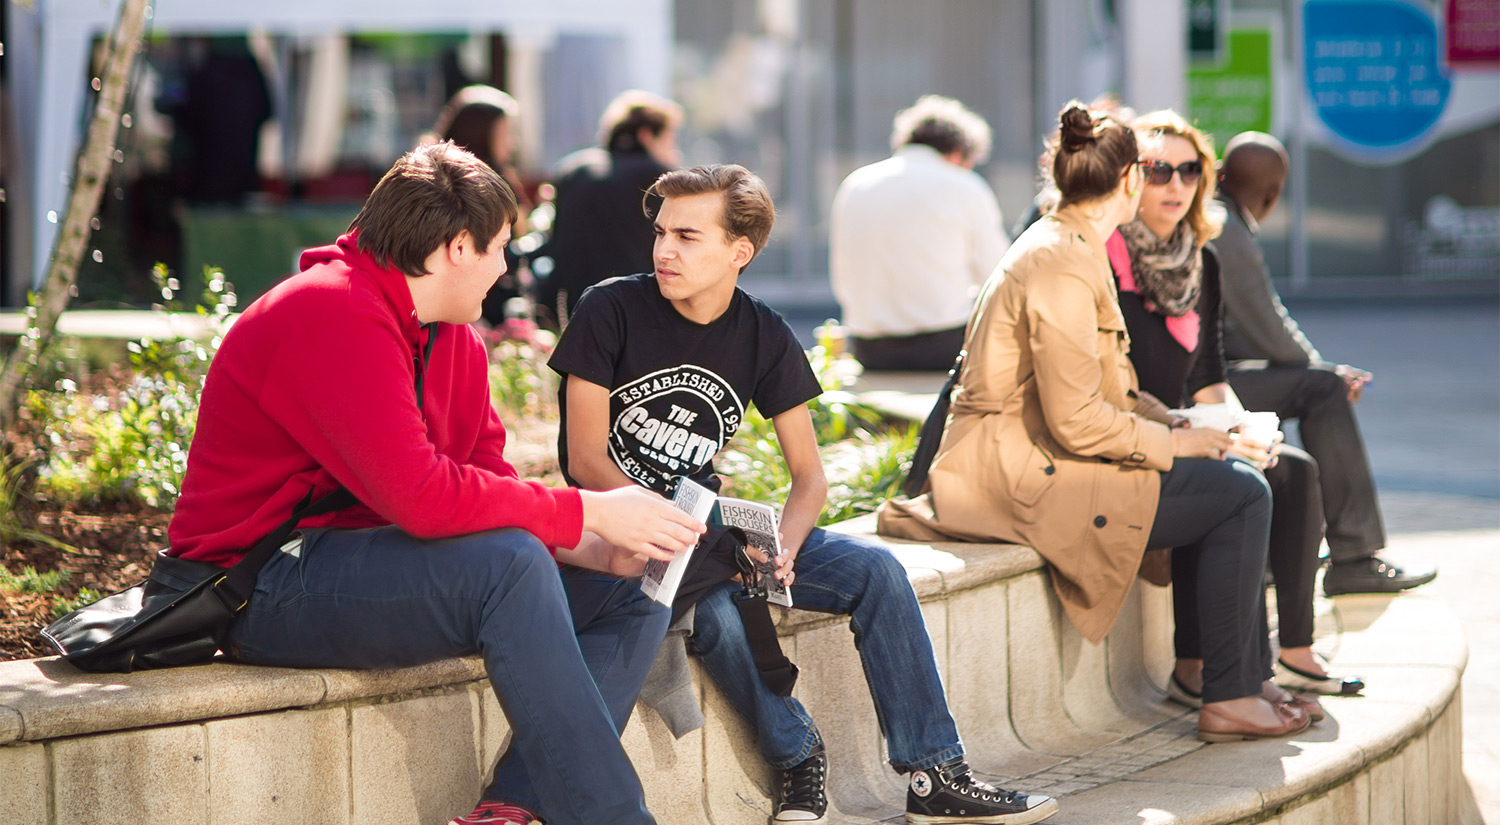 Our campus squares are a great place to meet up with friends.-essex